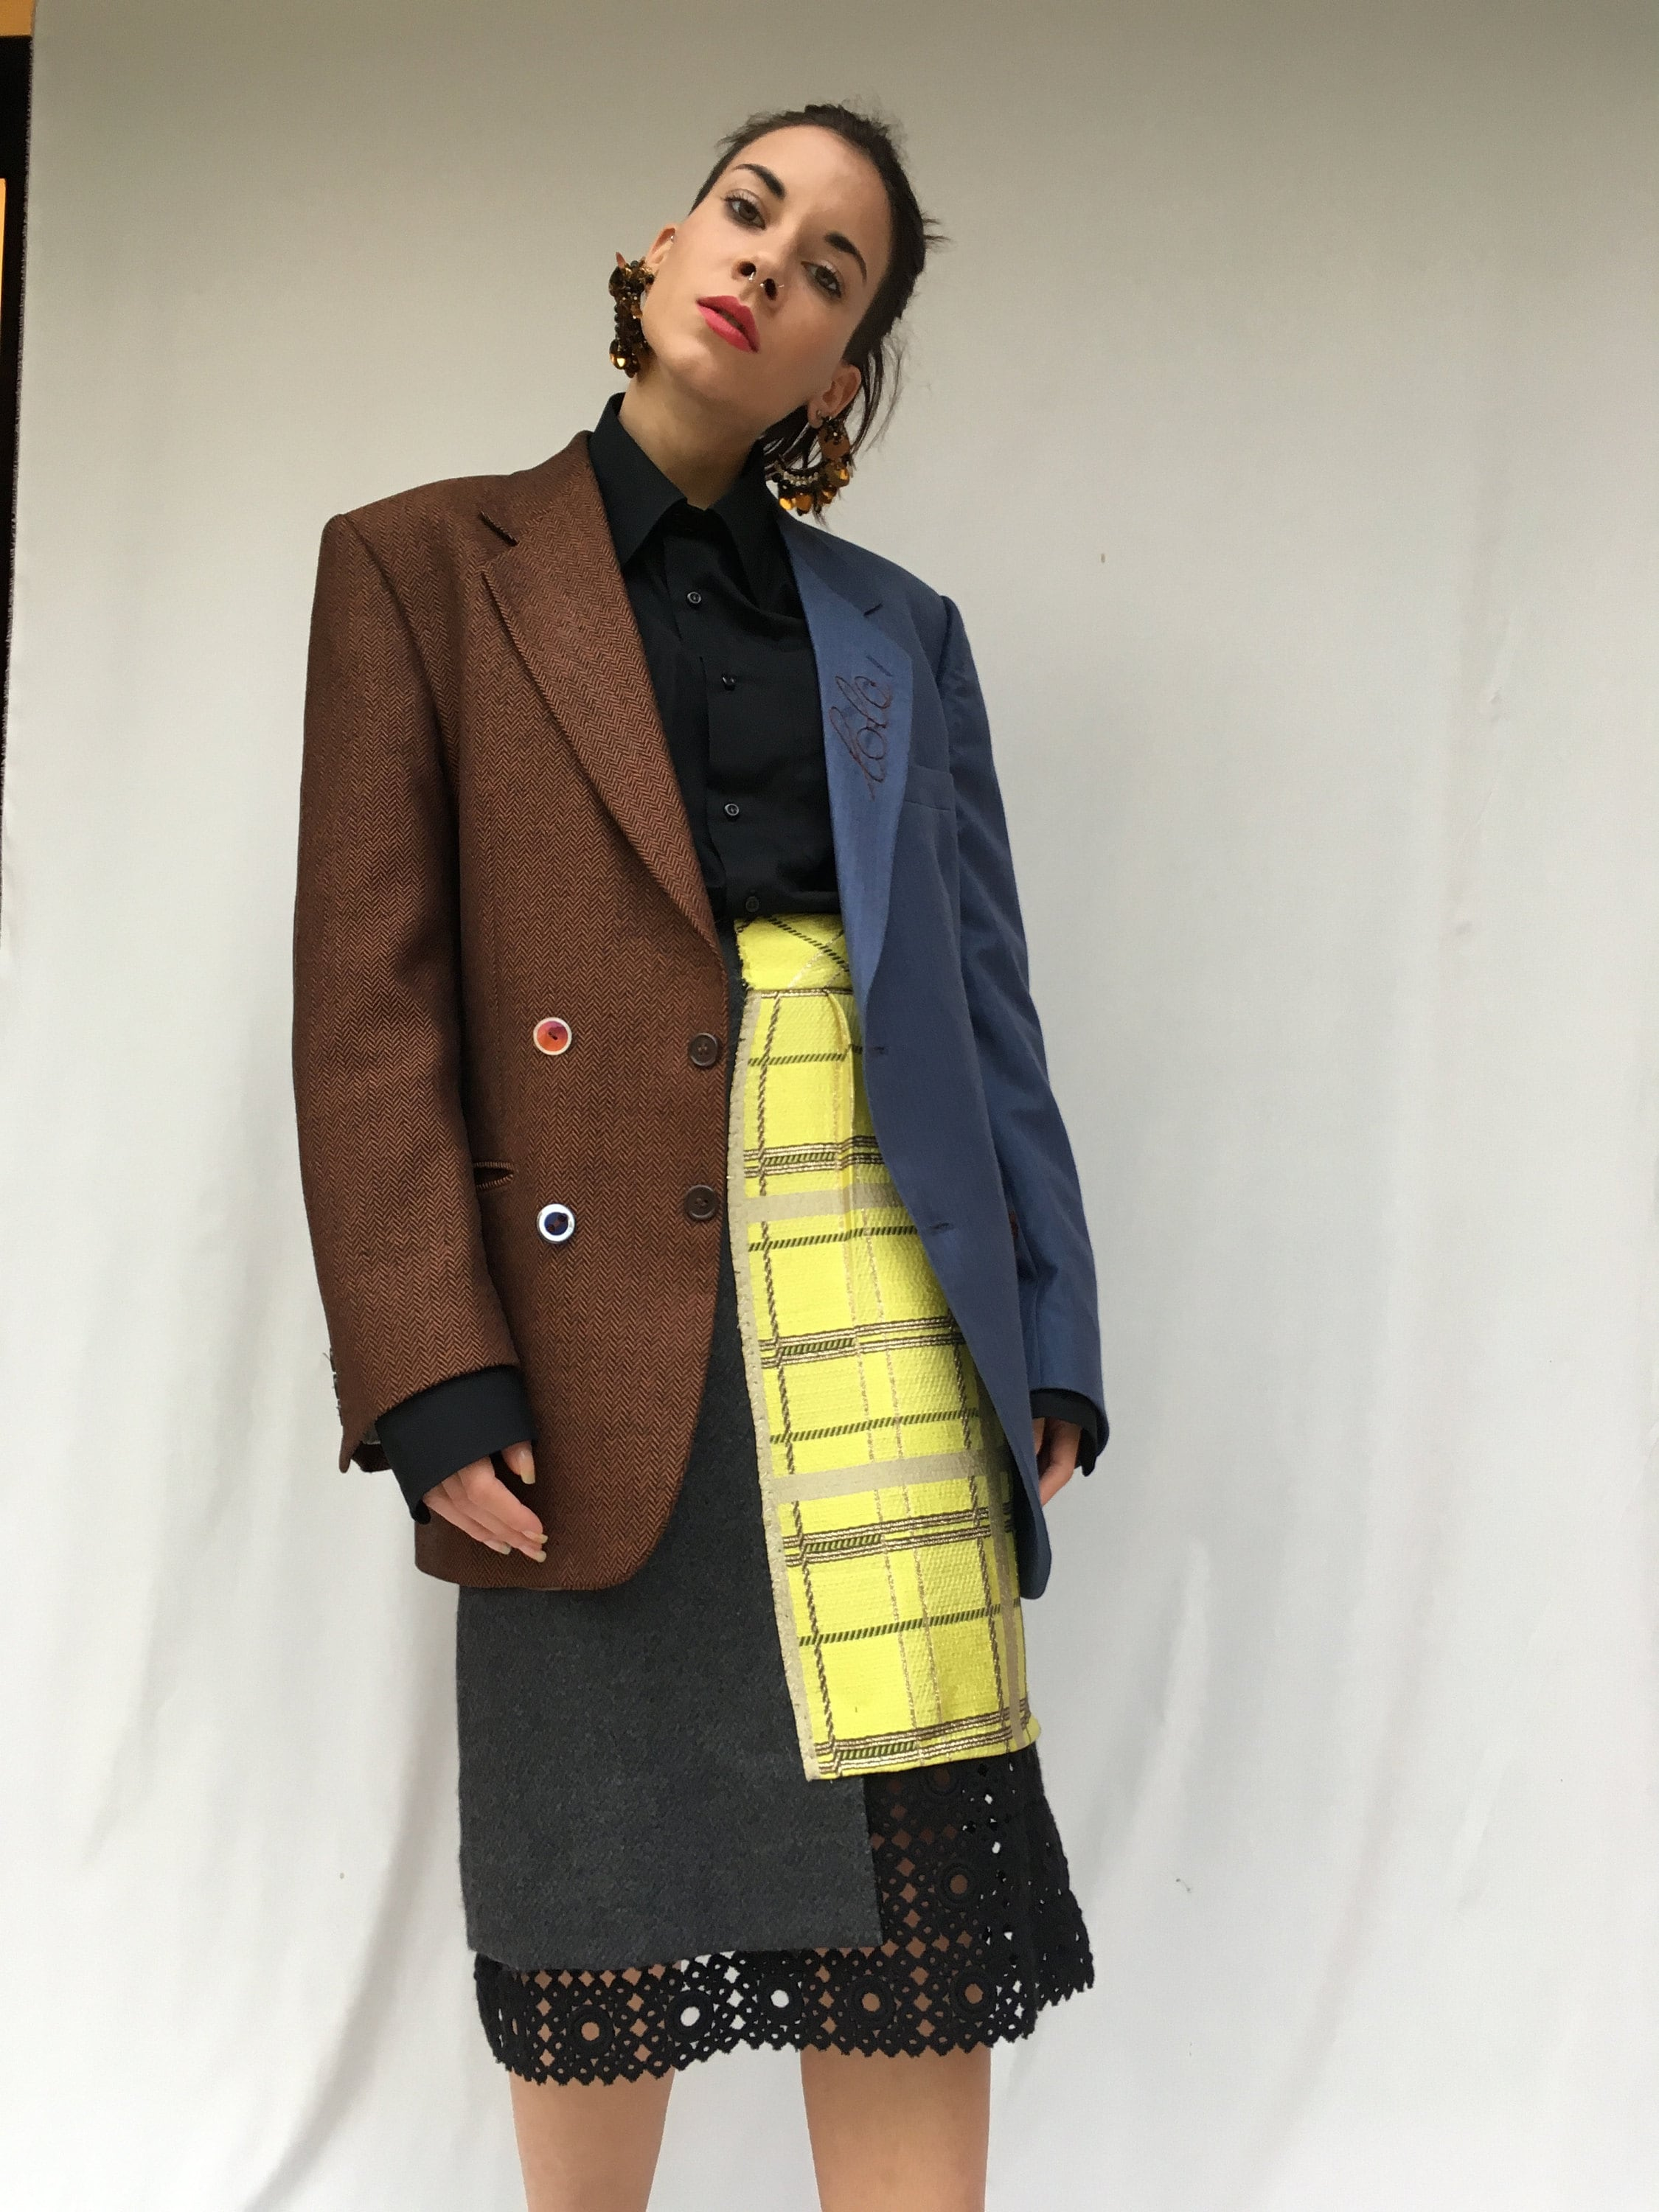 deconstructed skirt and jacket from selected vintage items. sustainability in the creative recovery of high quality waste clothing Lola darling clothing